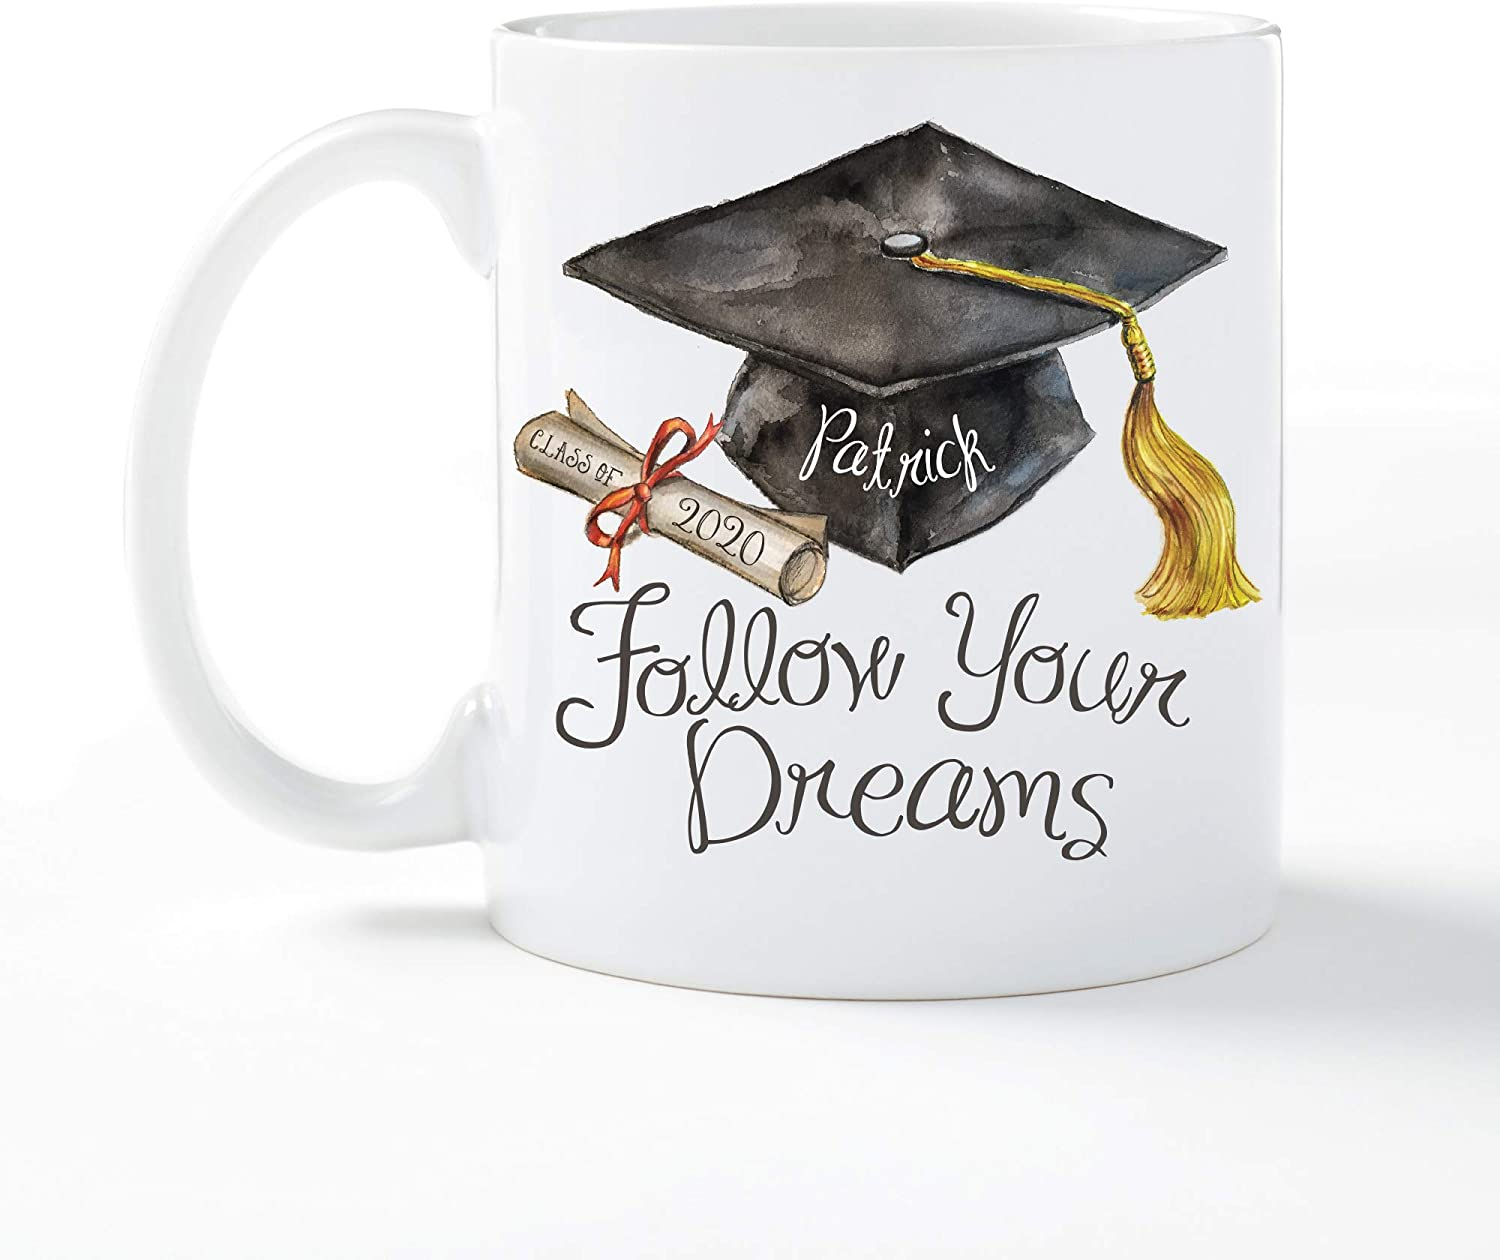 Follow Your Dreams Personalized Graduation Coffee Mug with Custom Name and Year Printed, White Ceramic Cup with Handle, Creative and Fun Novelty Gift, 11oz